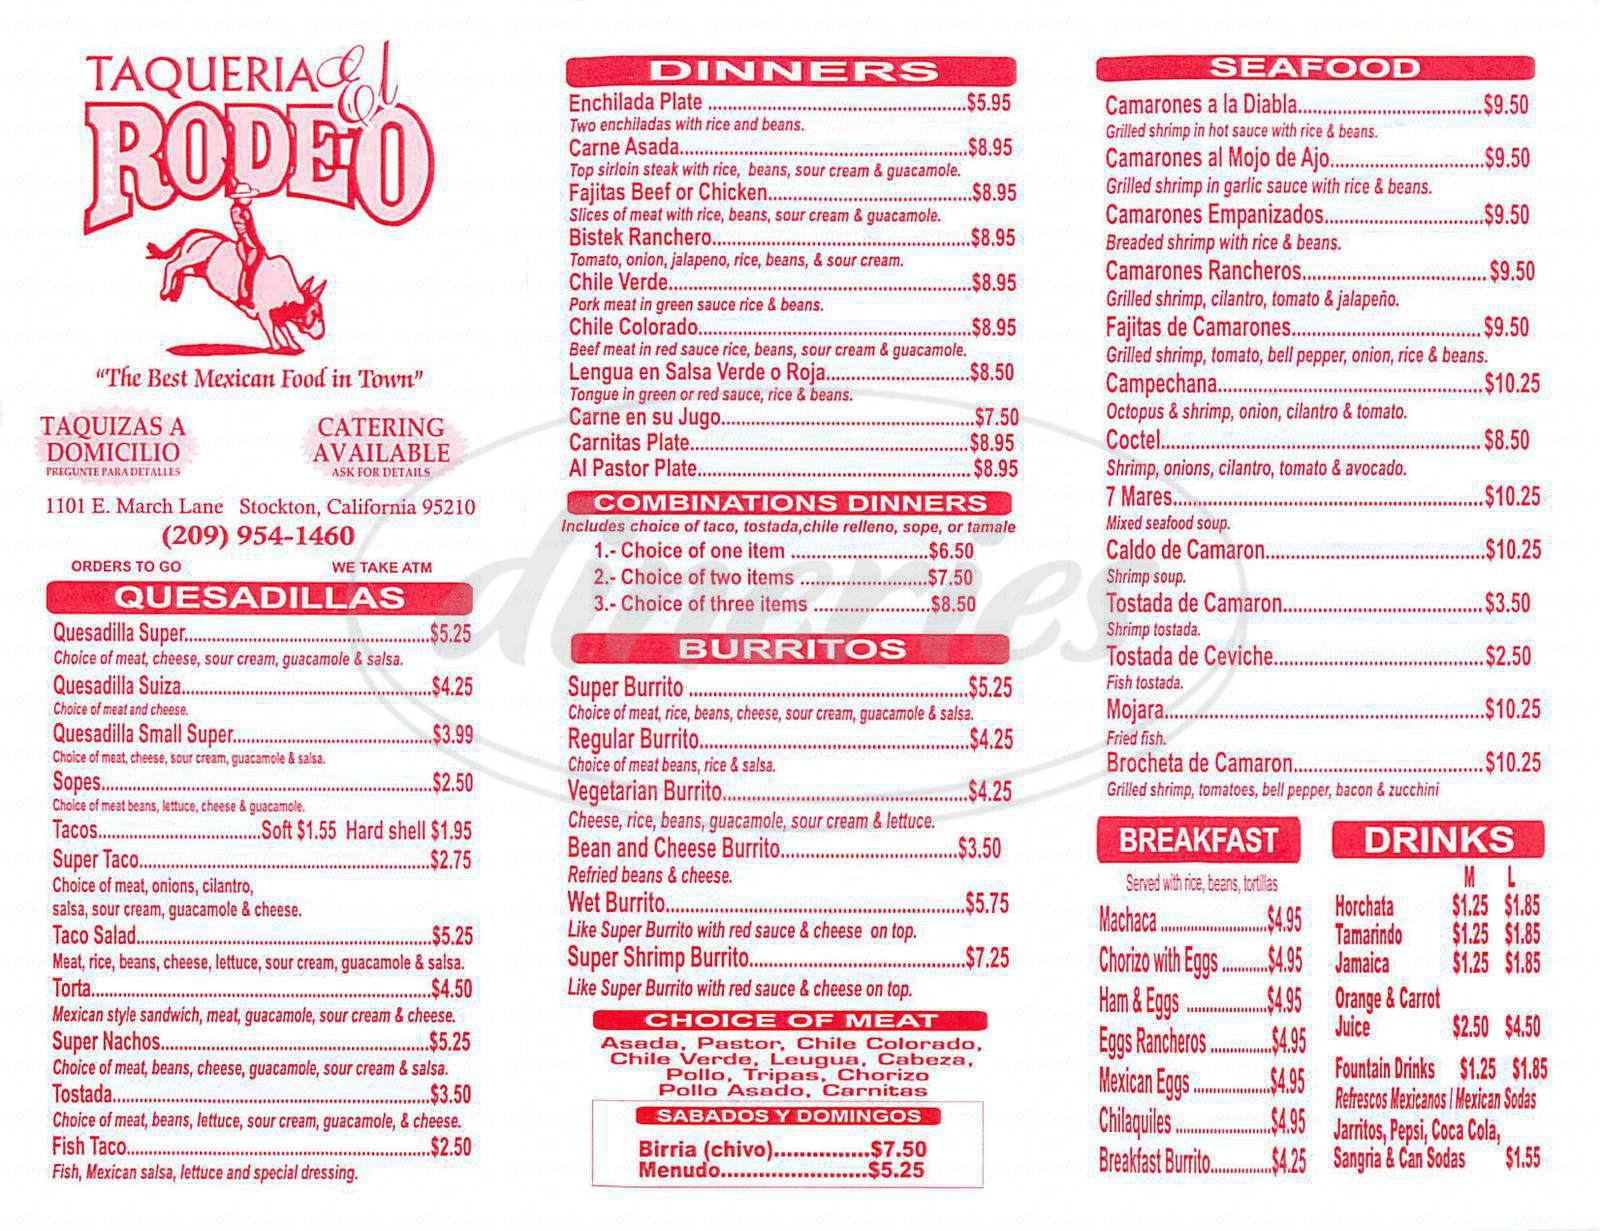 menu for El Rodeo Taqueria